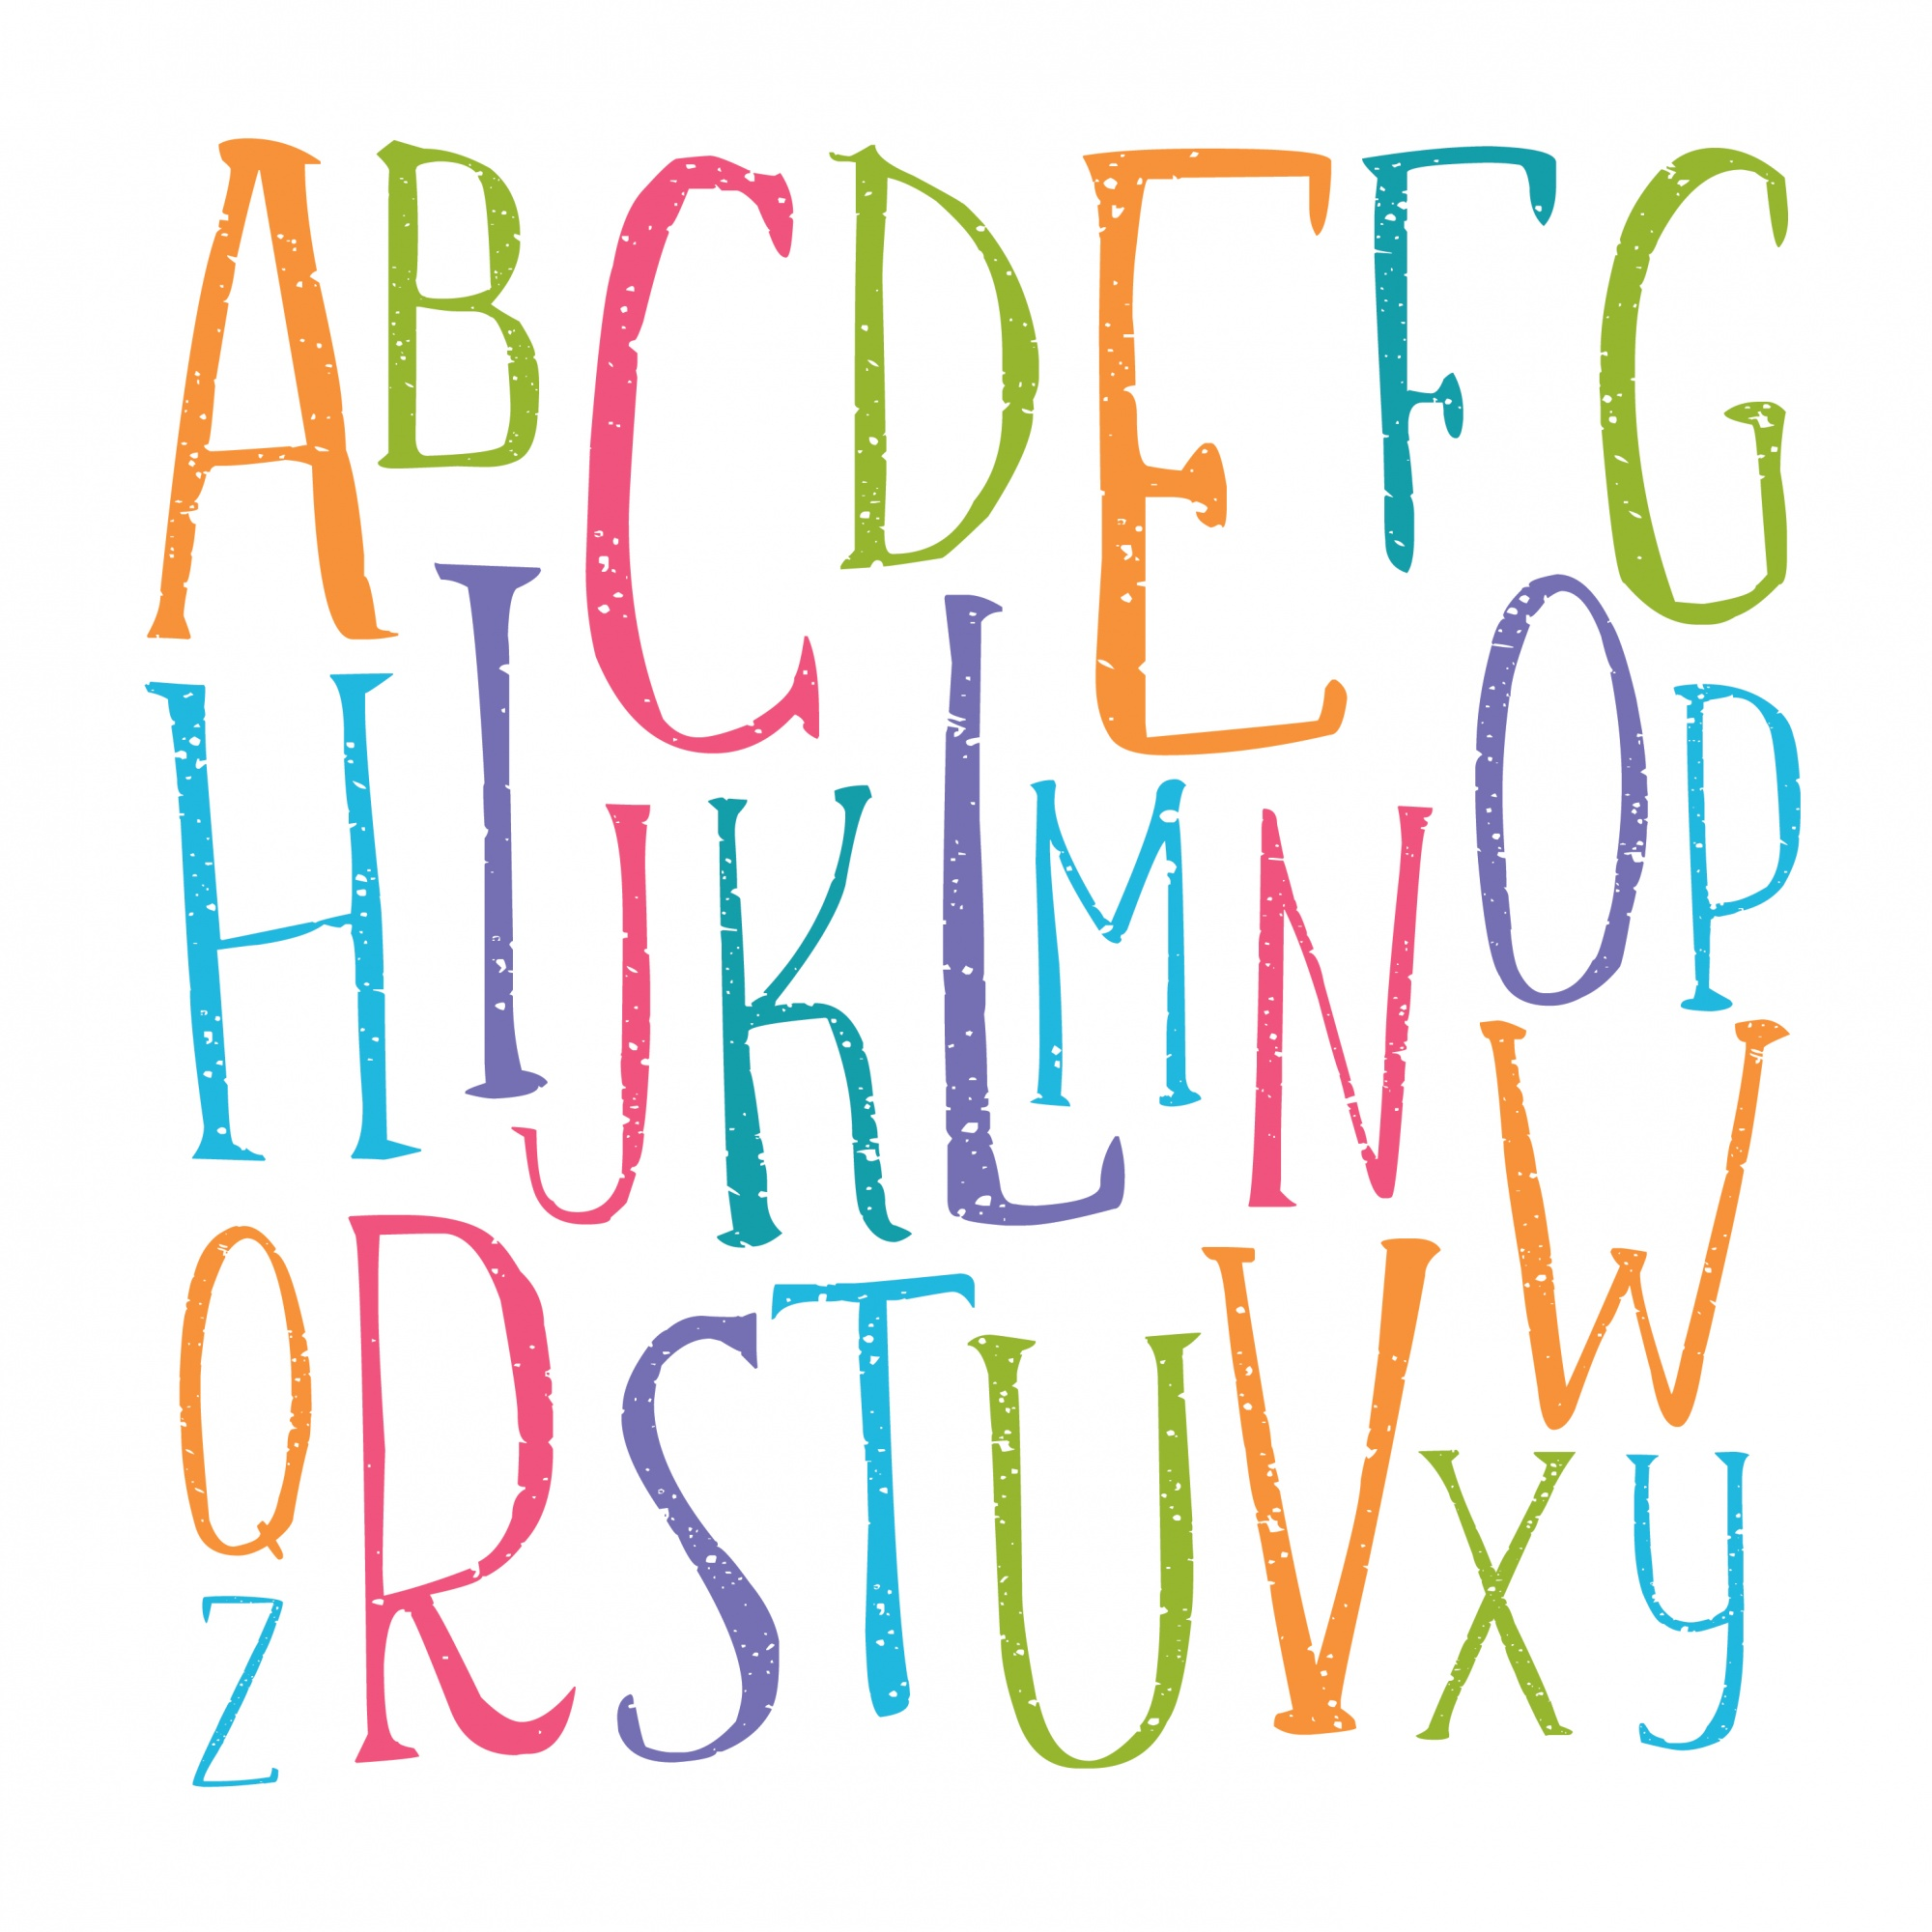 Handwritten color alphabet